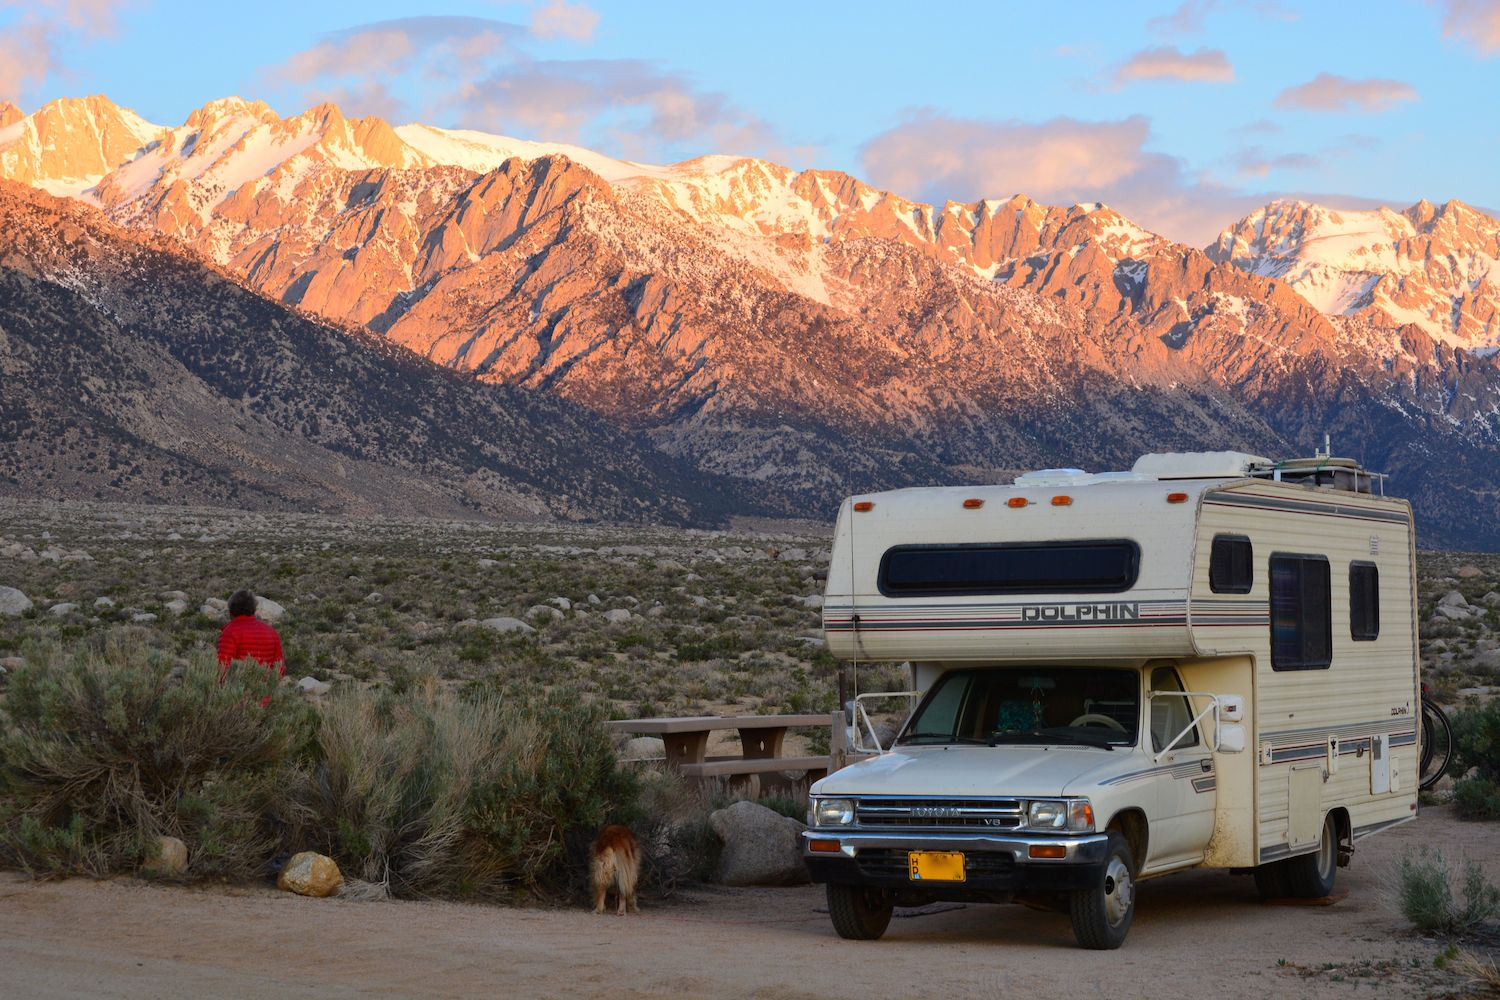 Camping near the base of Mt. Whitney.